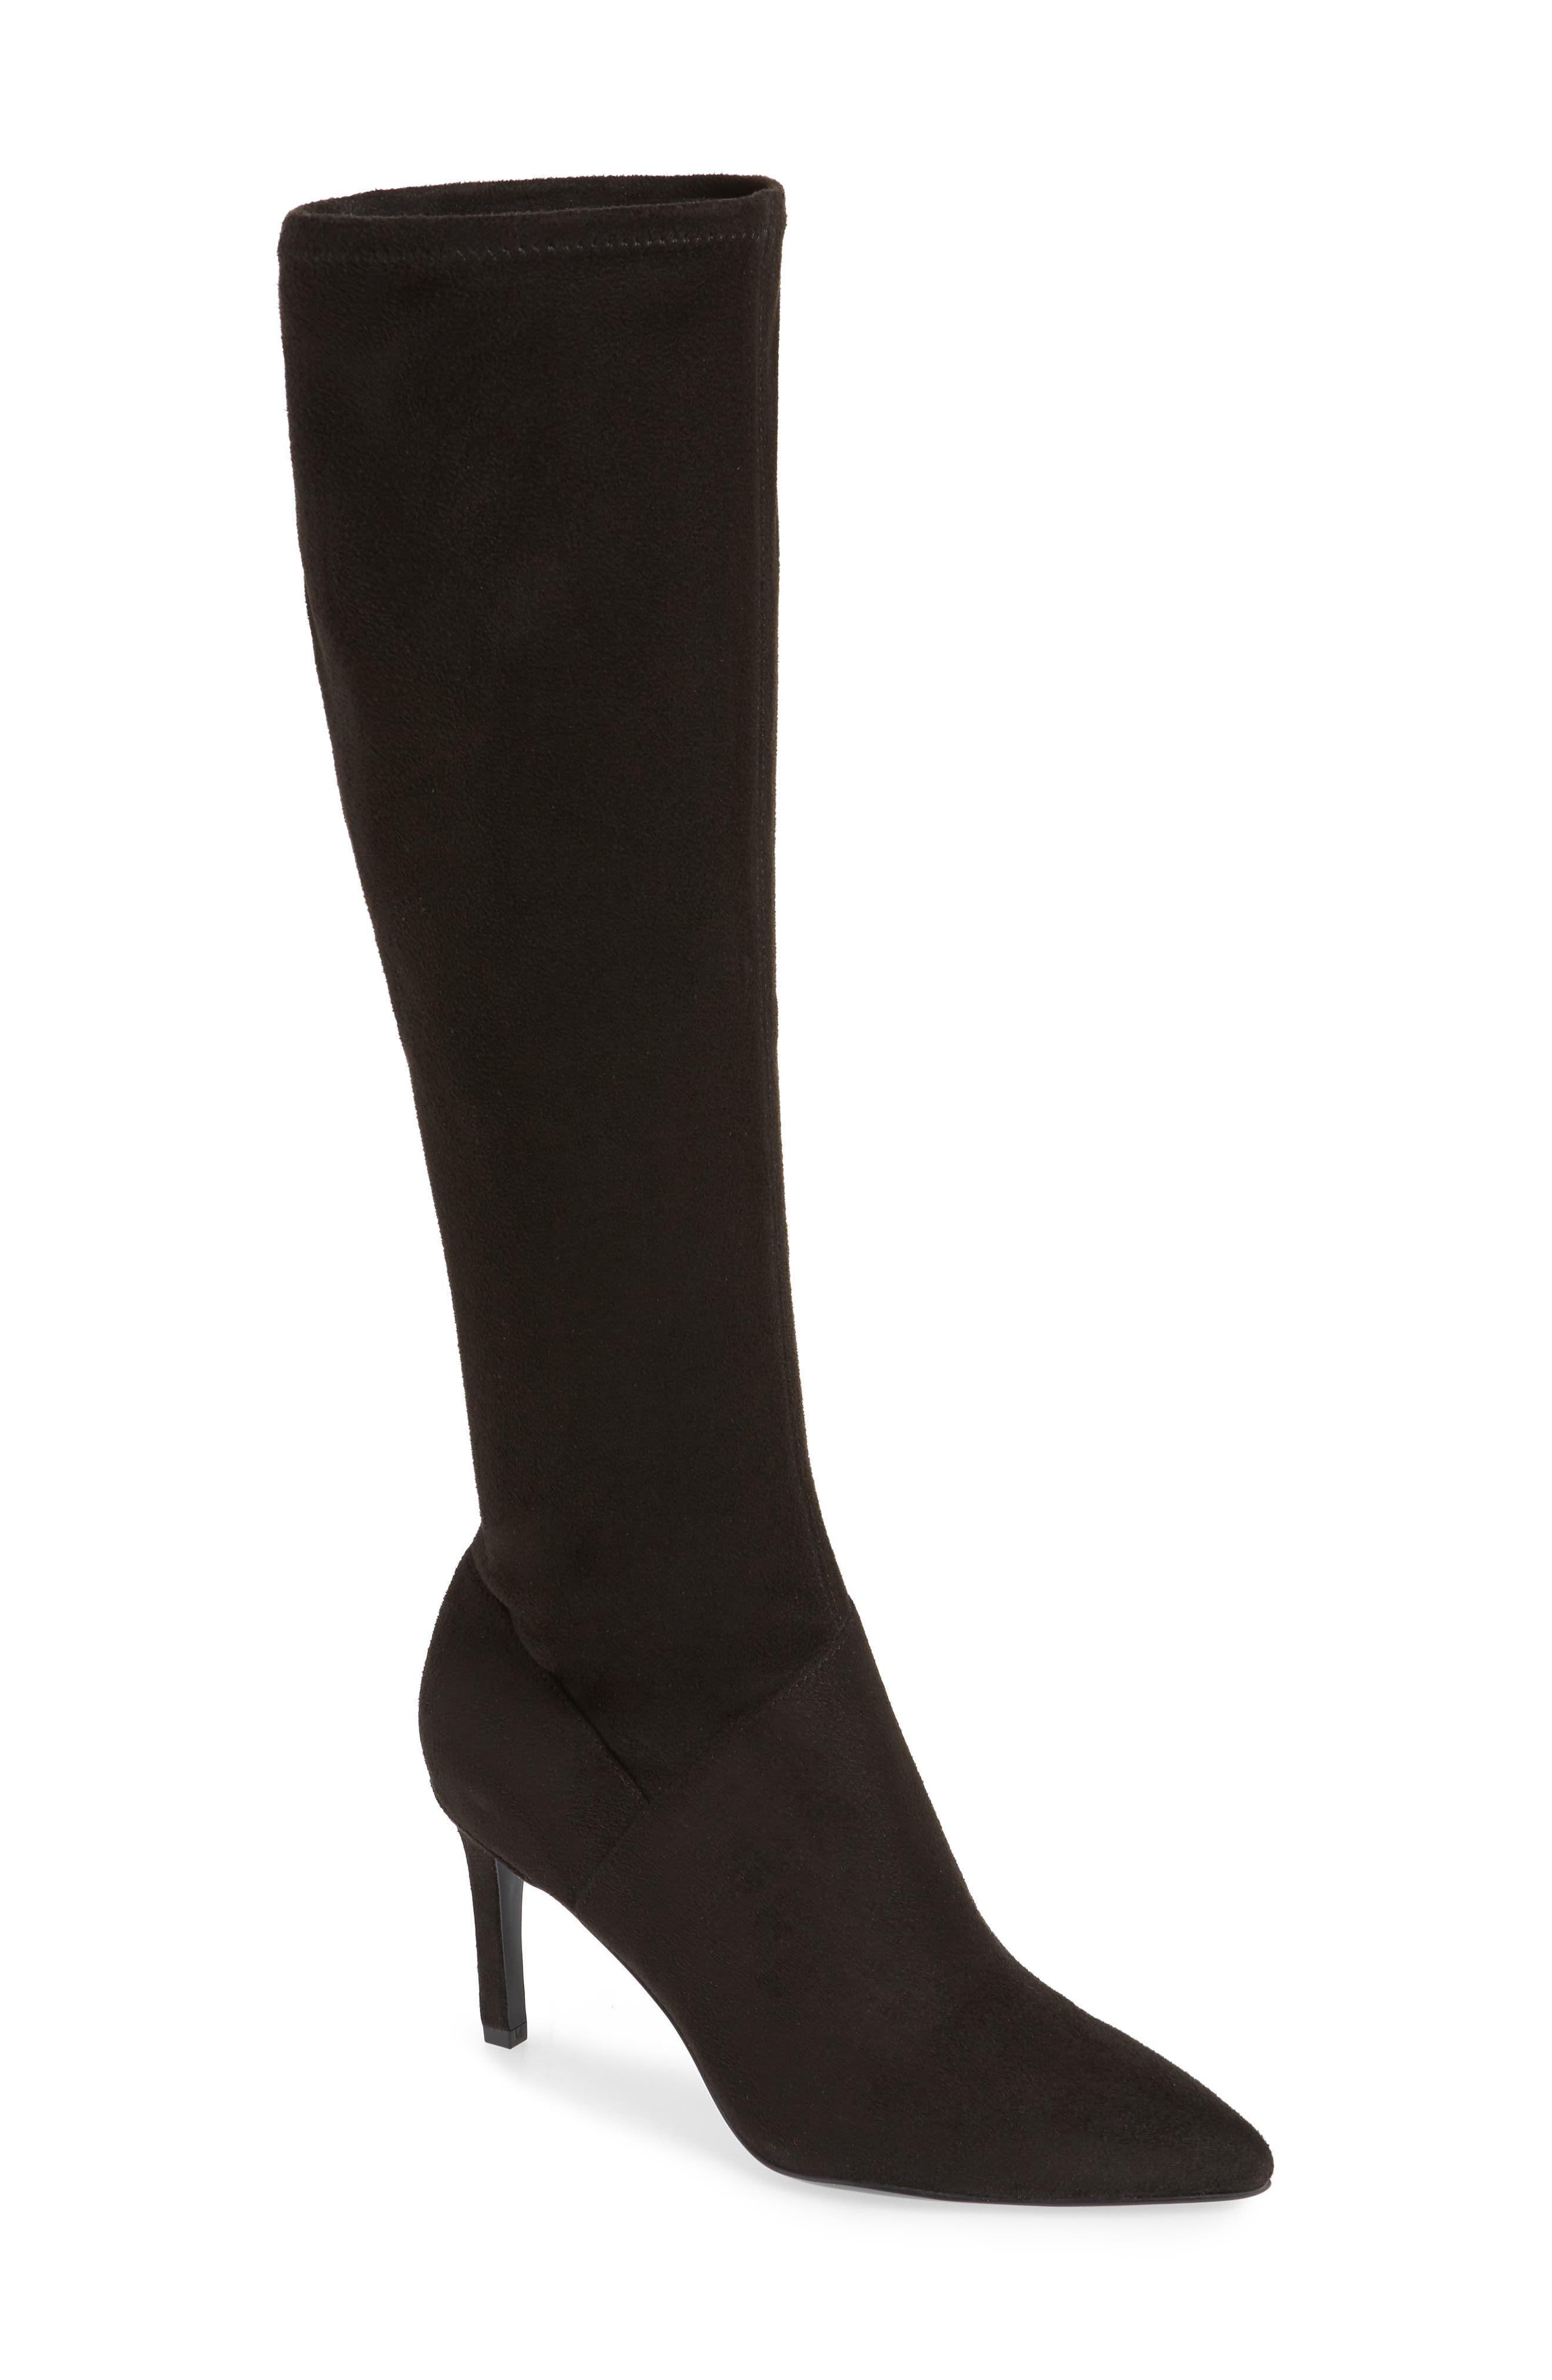 Nine West Chelsis Knee High Boot, Black